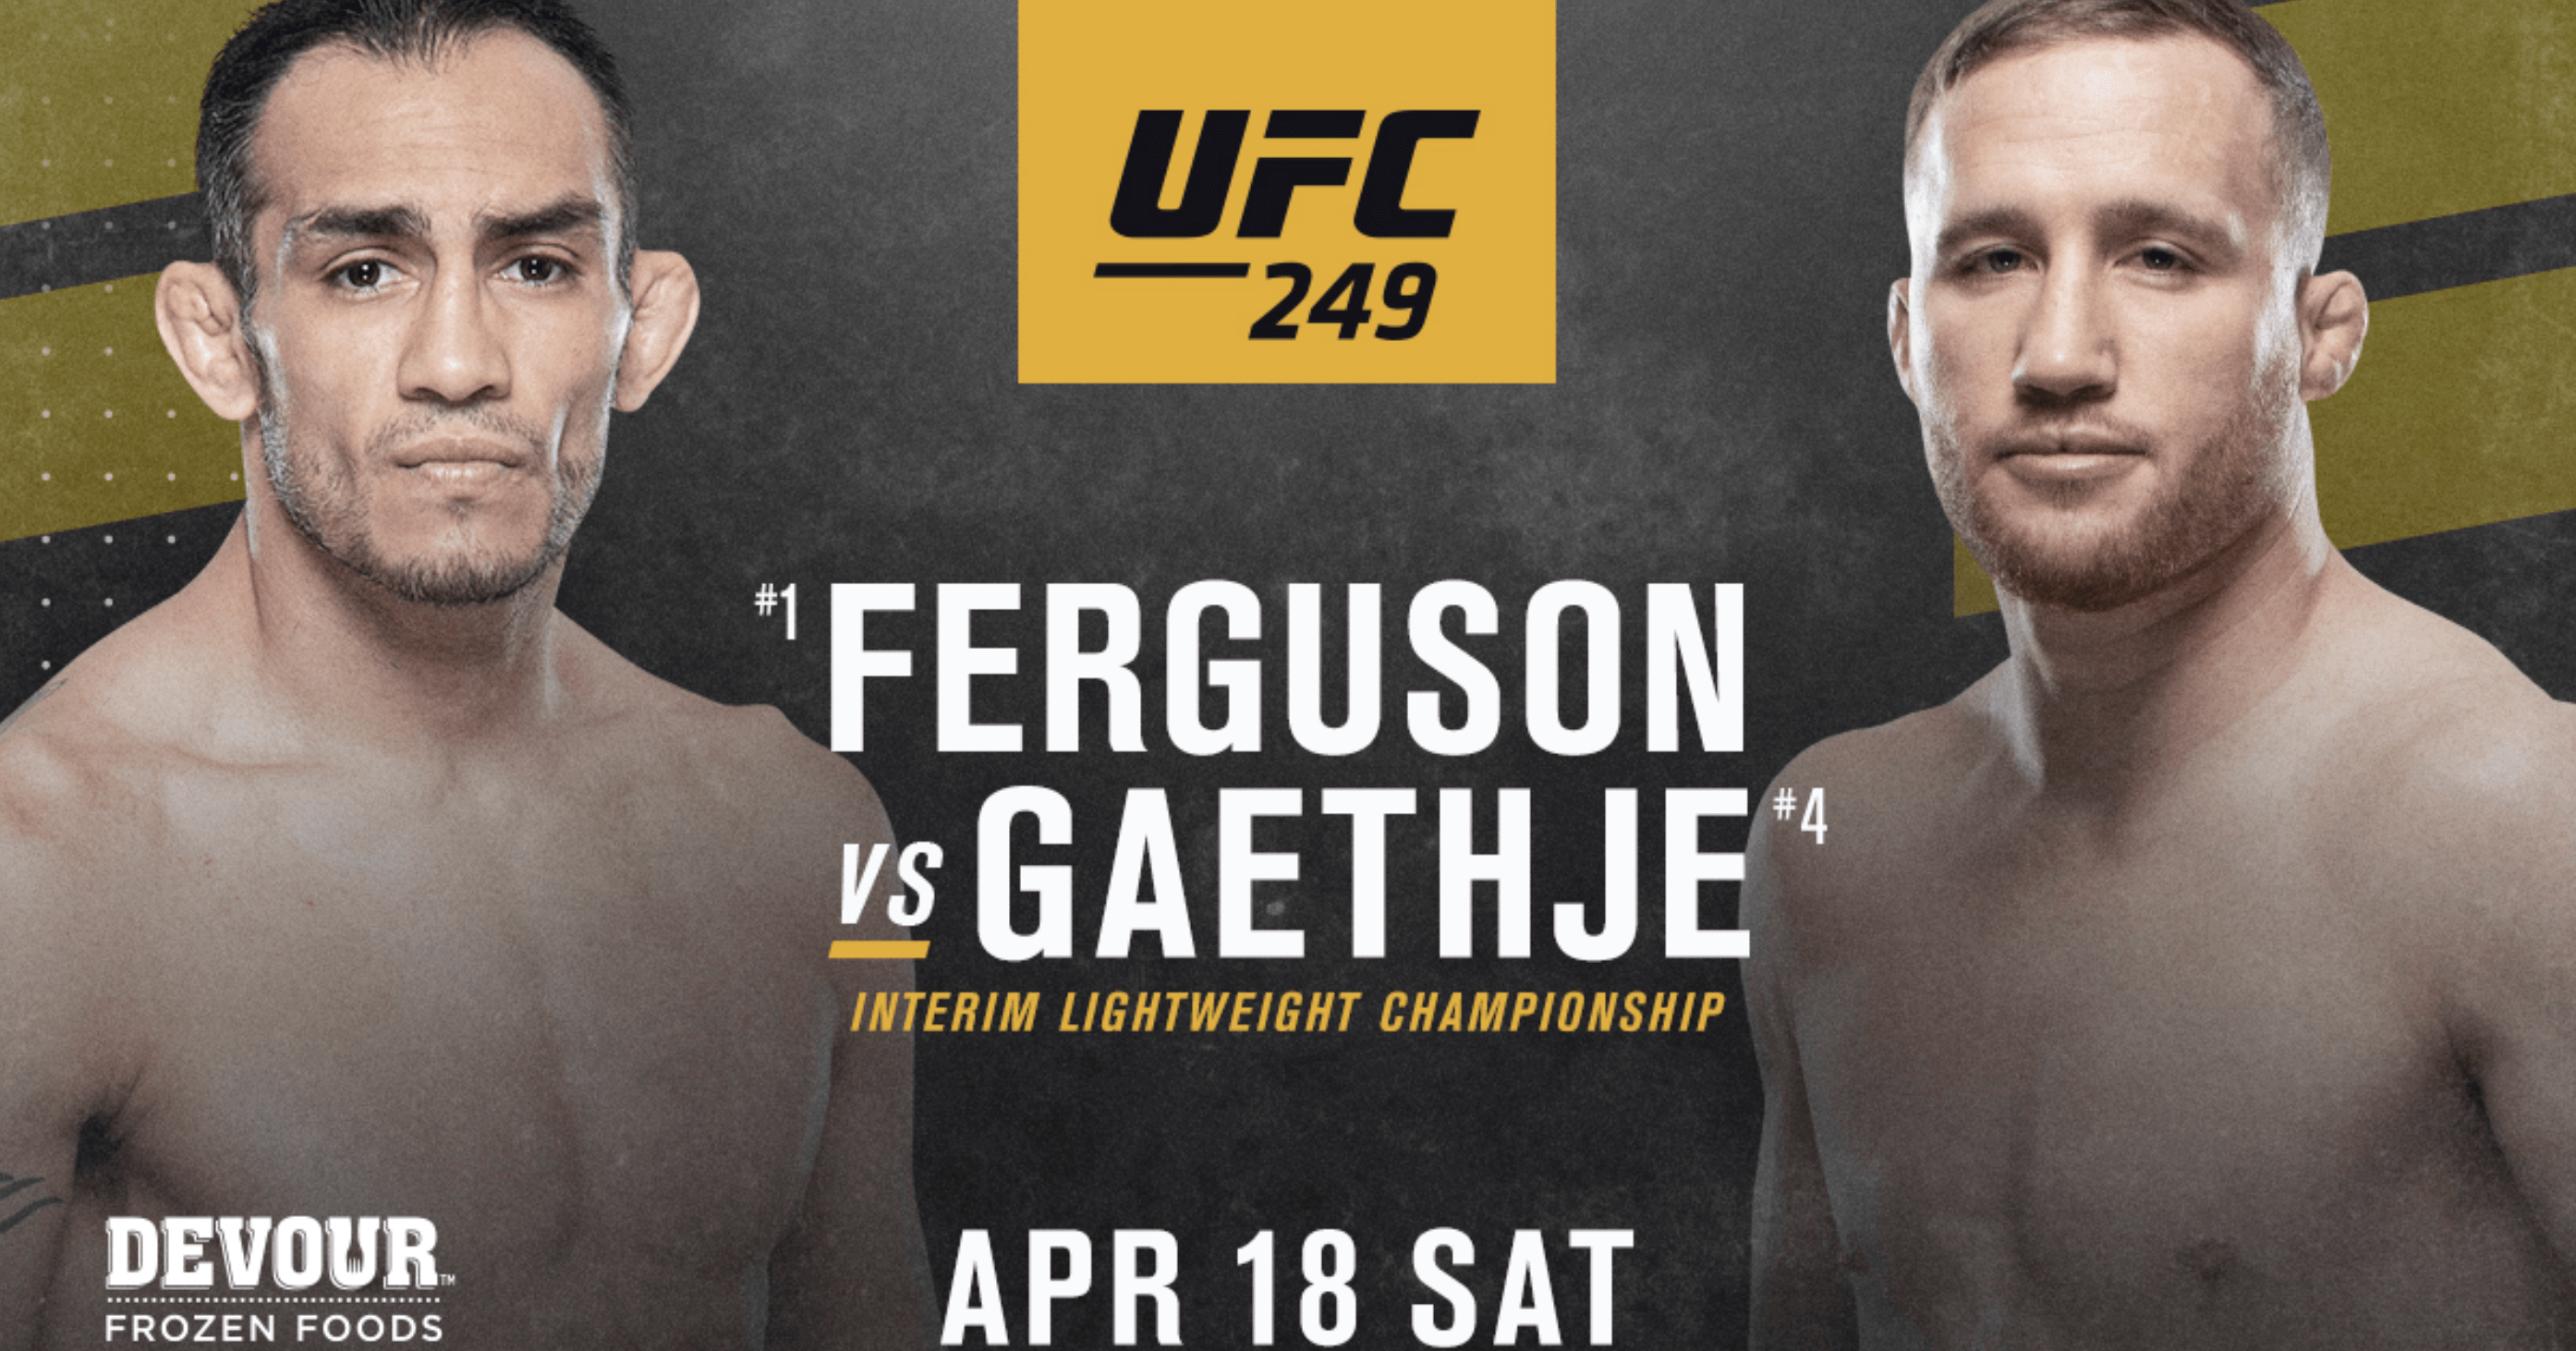 This Is How The MMA World Reacted To The Ferguson vs Gaethje News